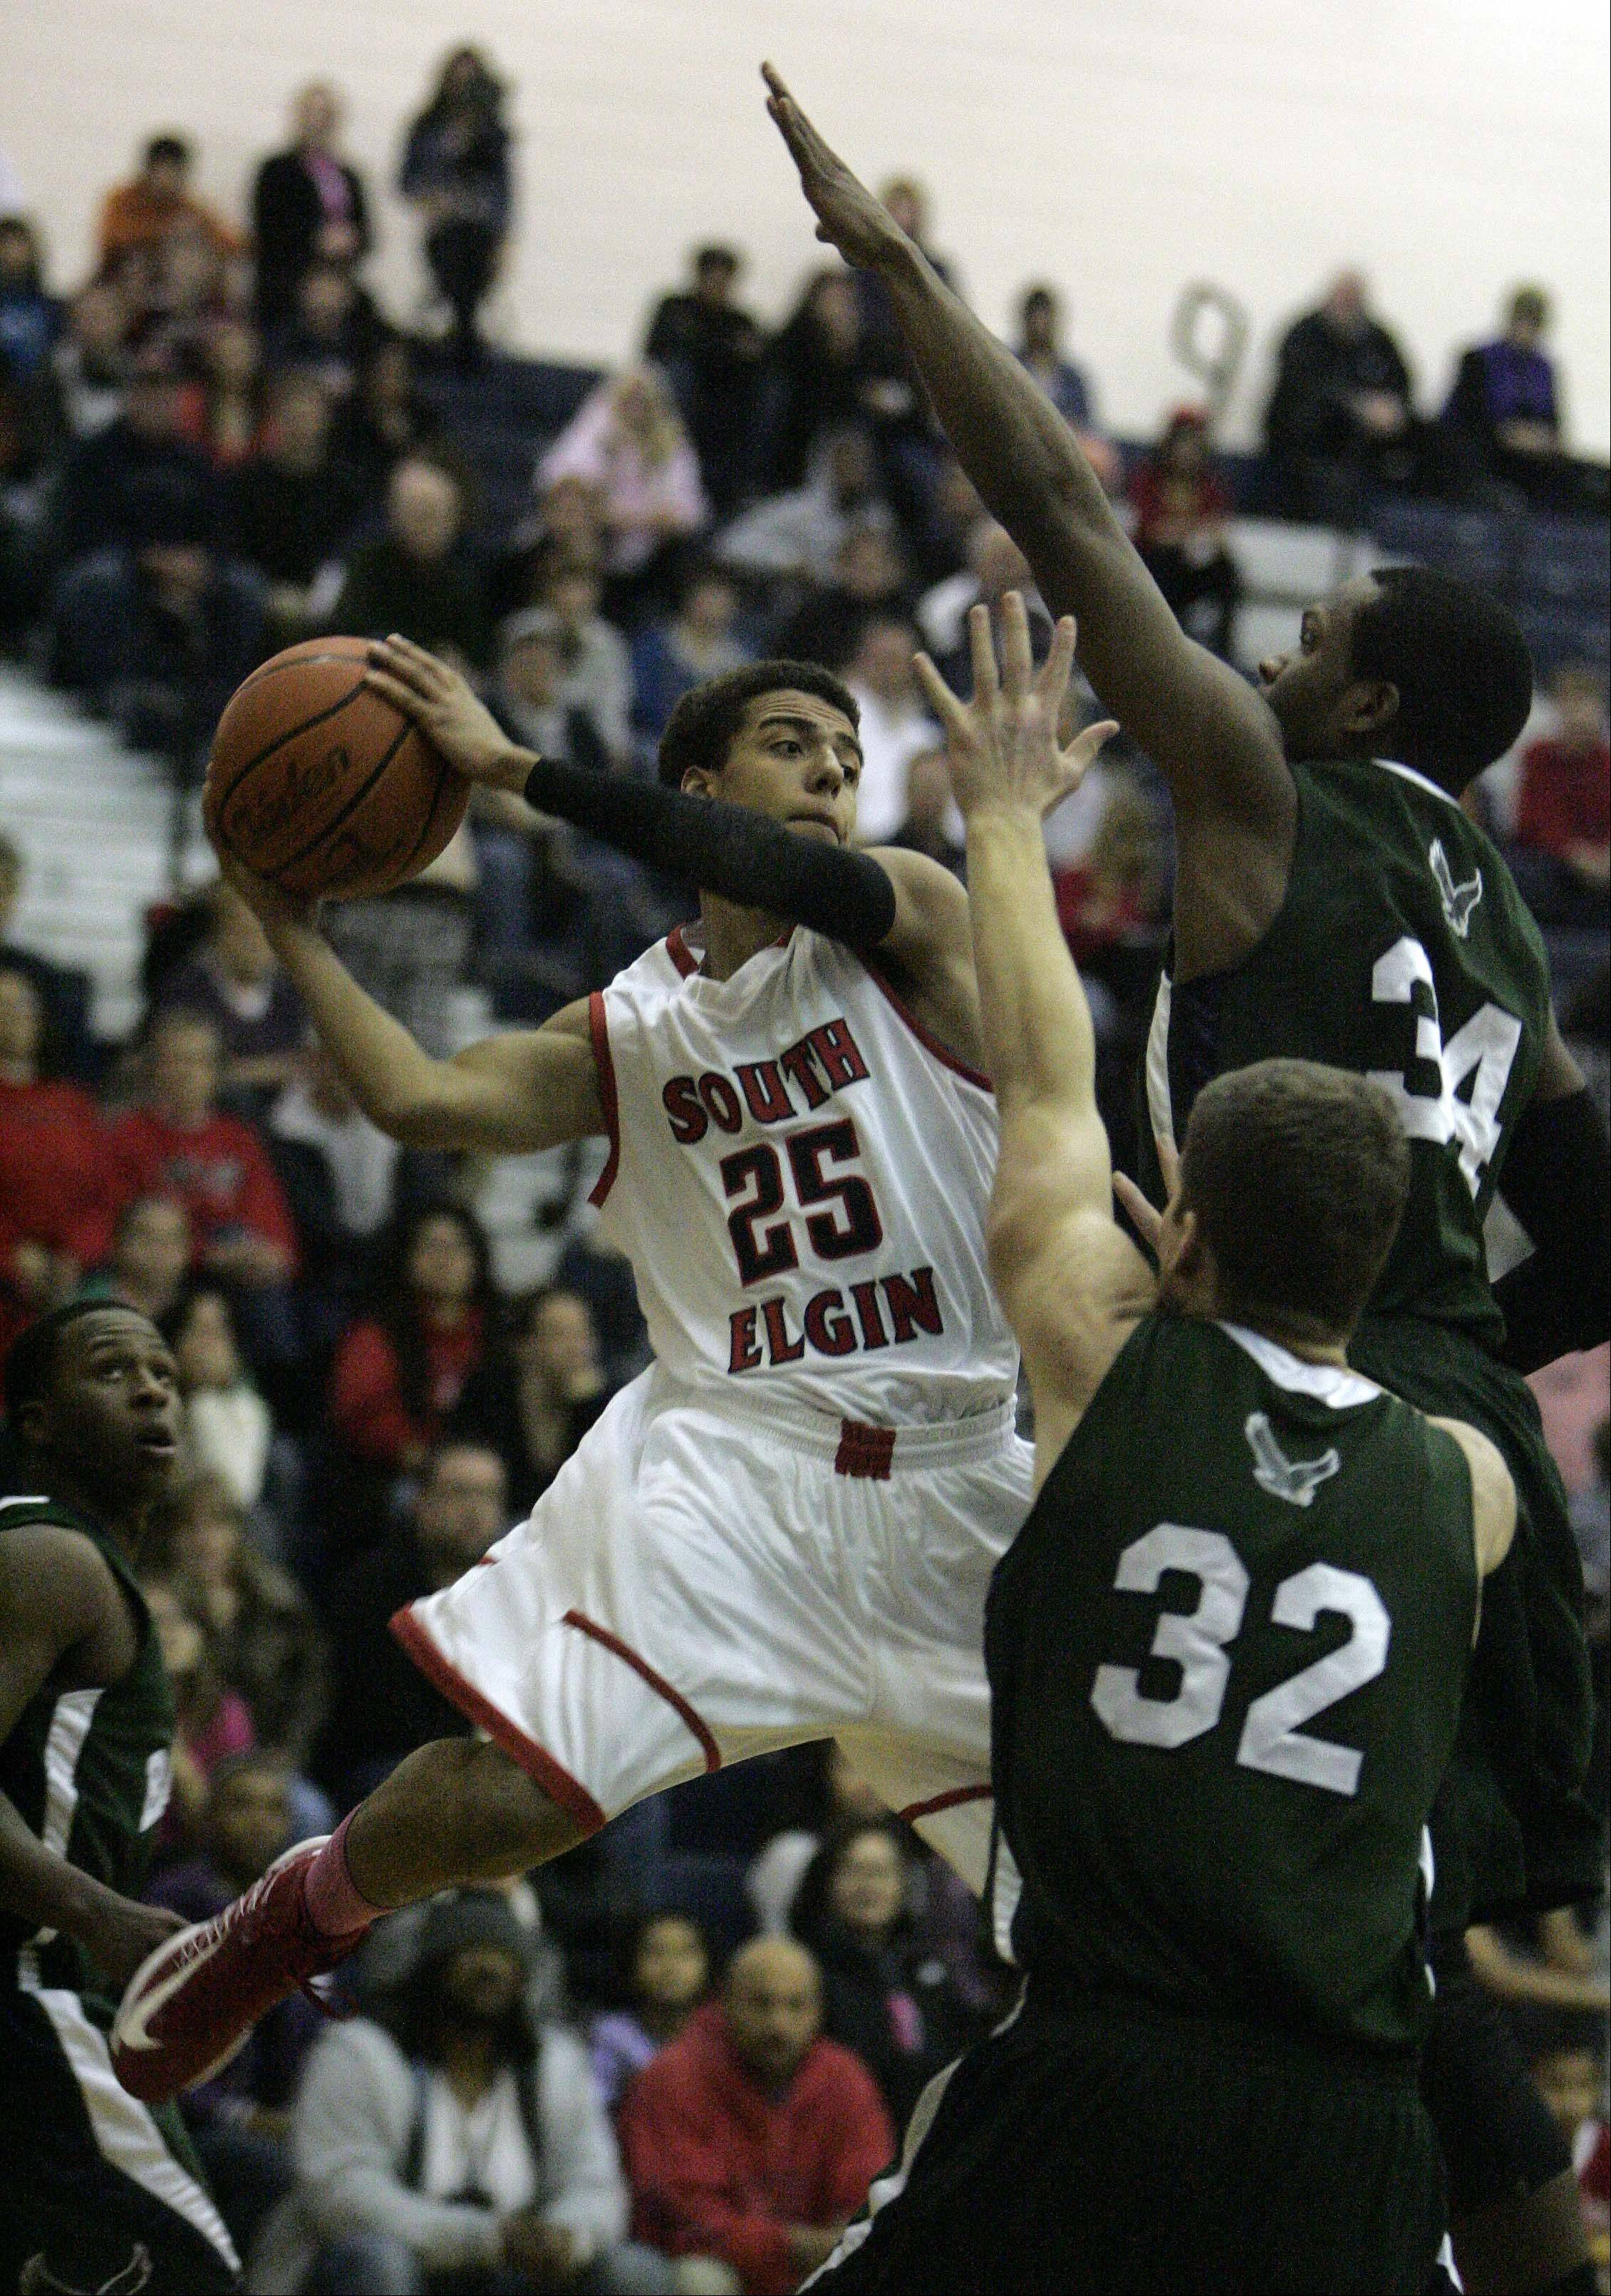 South Elgin's Darius Wells (25) goes to the hoop past Bartlett's Lance Whitaker and Mitch Reid Friday in South Elgin.